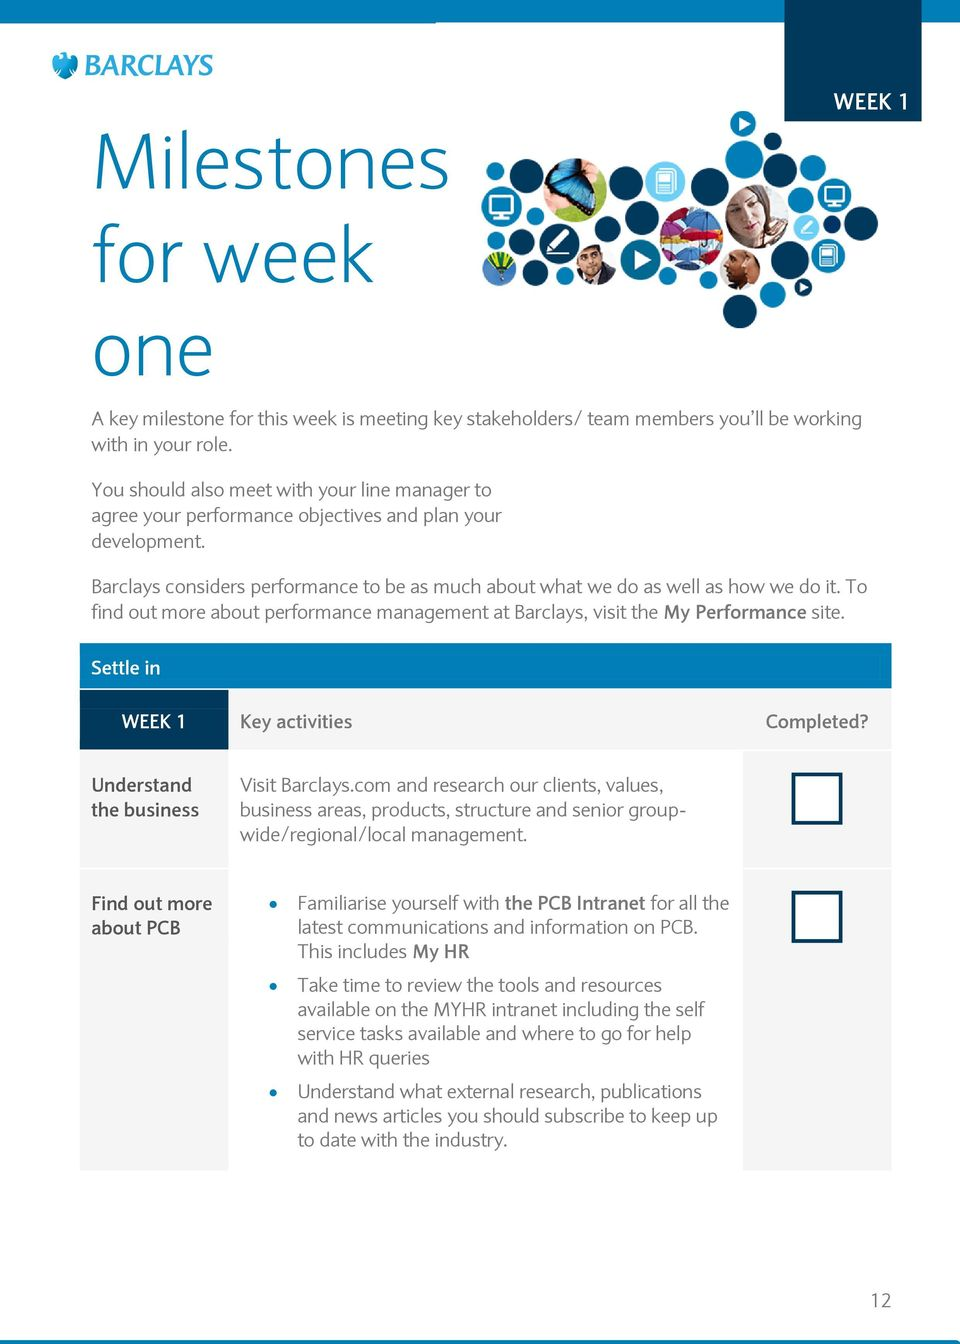 To find out more about performance management at Barclays, visit the My Performance site. Settle in WEEK 1 Key activities Completed? Understand the business Visit Barclays.